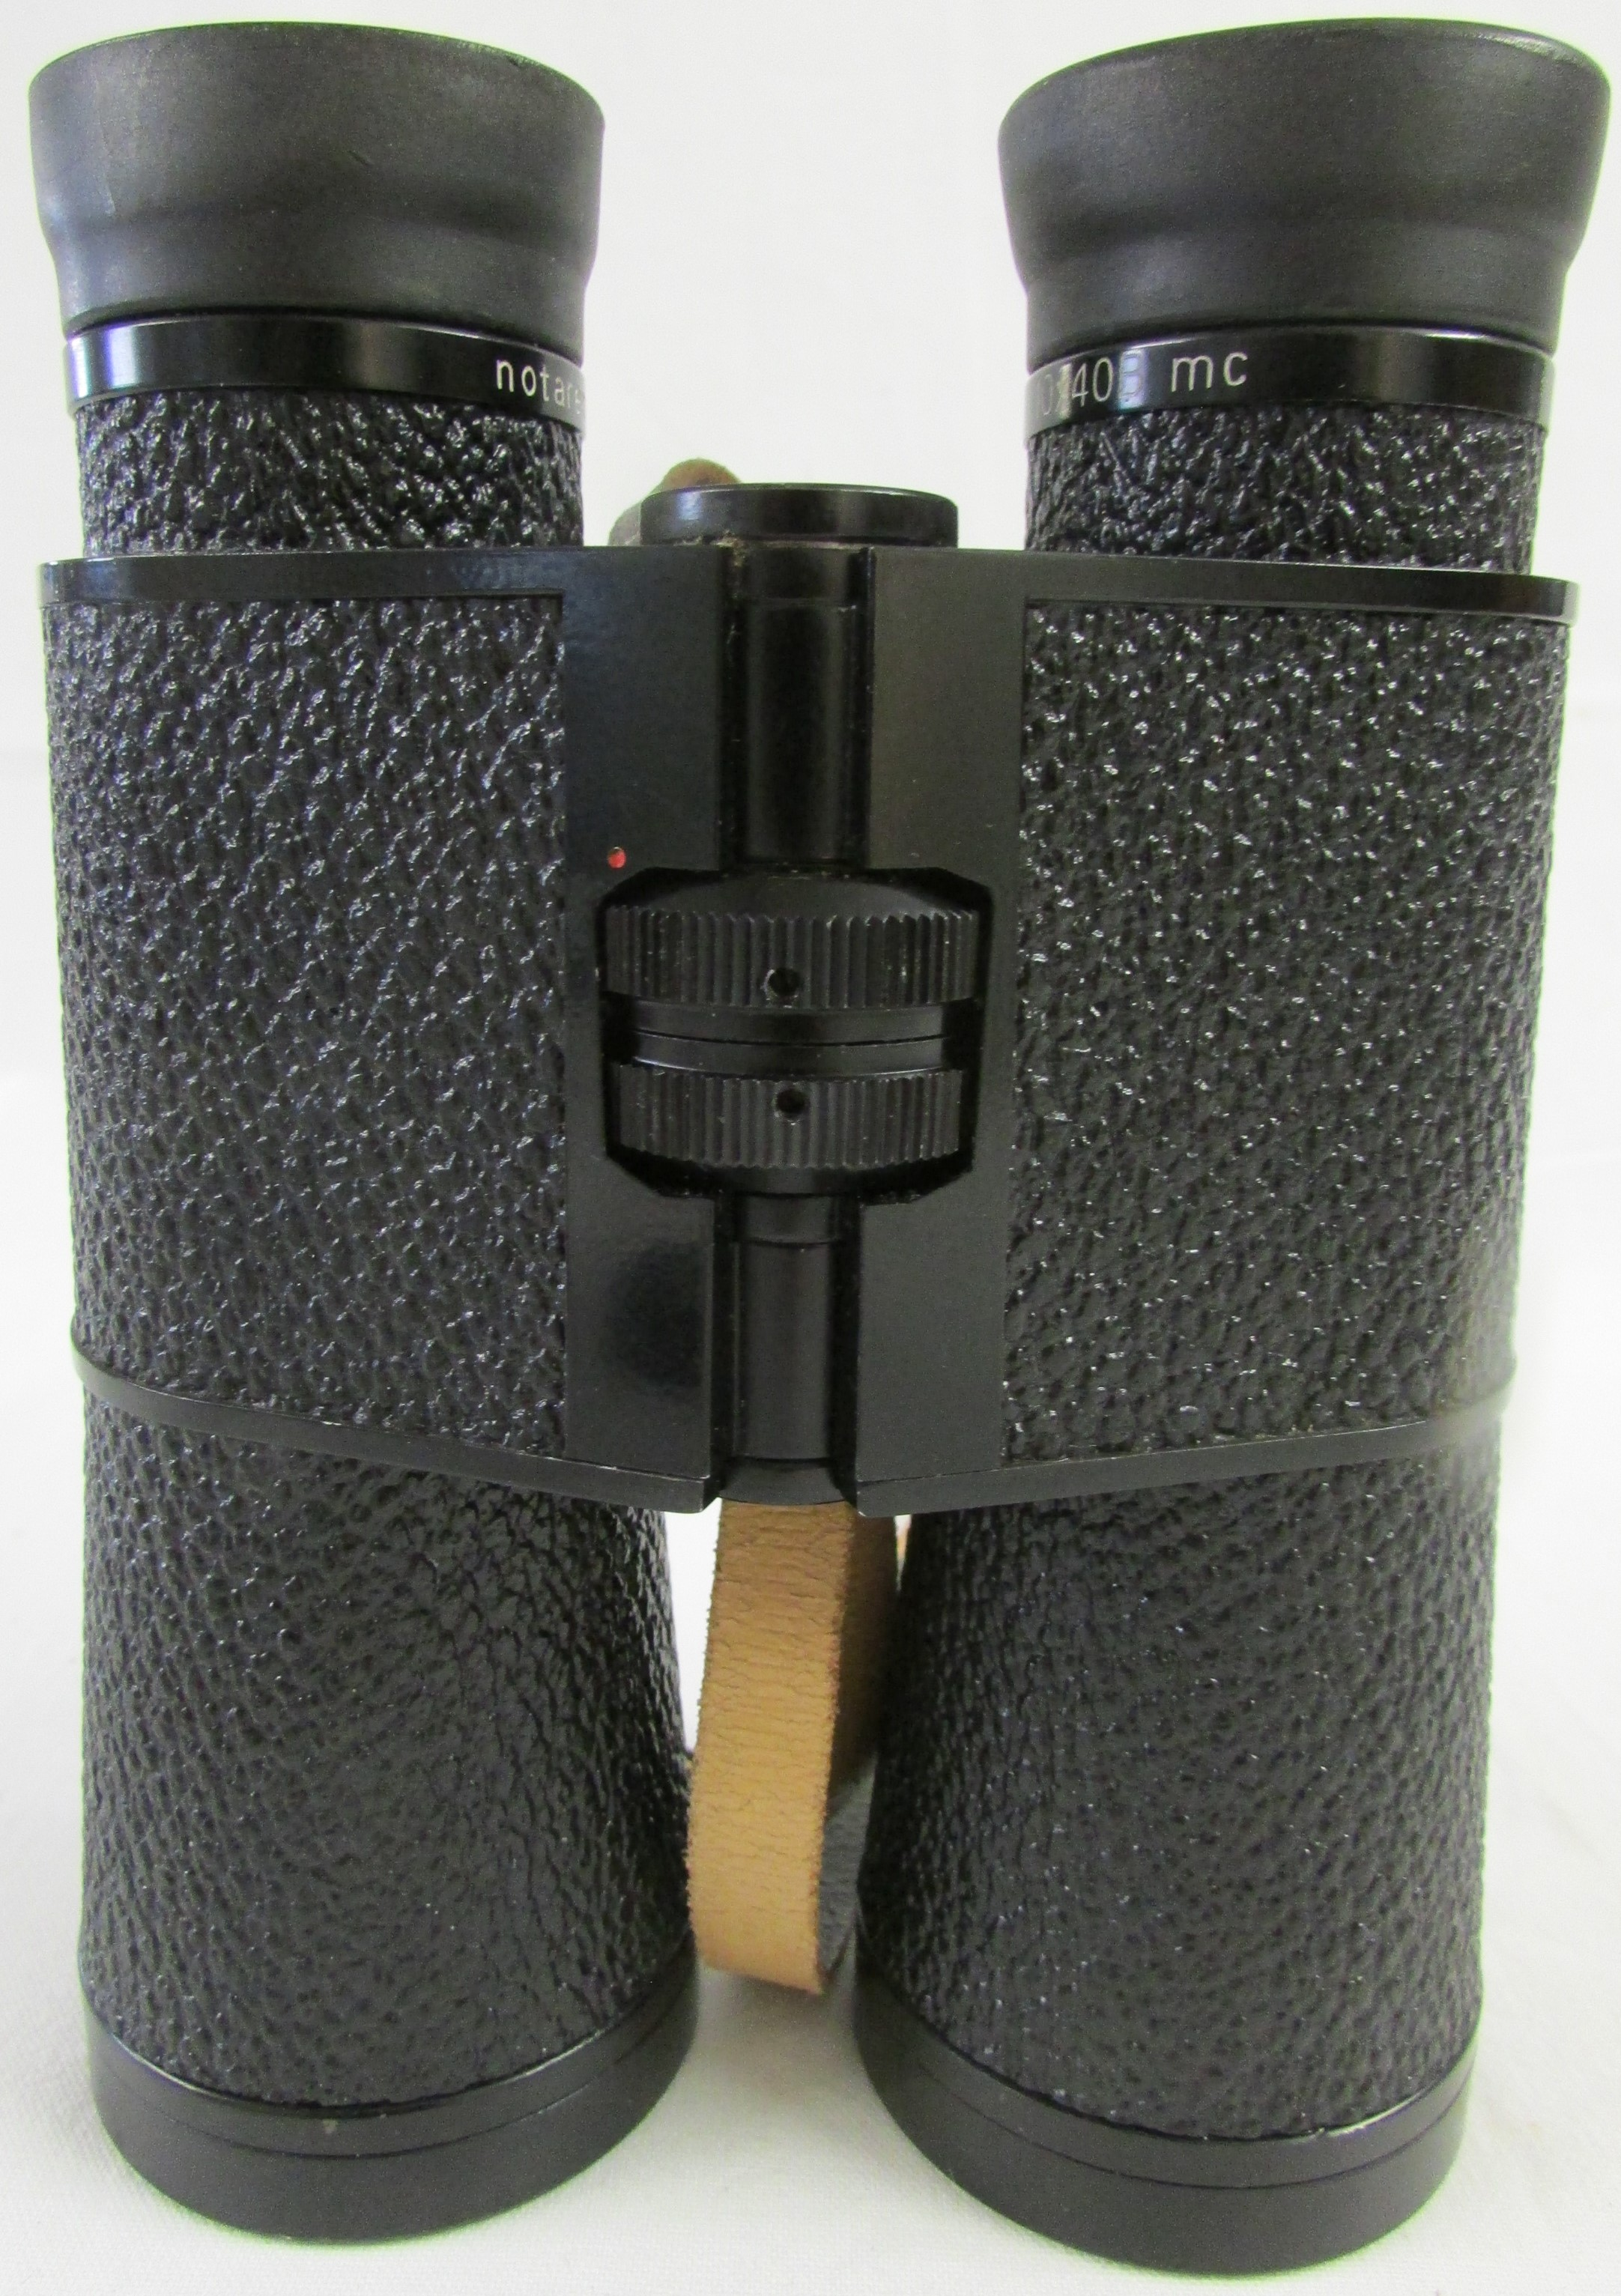 Lot 274 - Carl Zeiss 10 x 40B MC Notarem binoculars, with two yellow objective filters, and brown leather